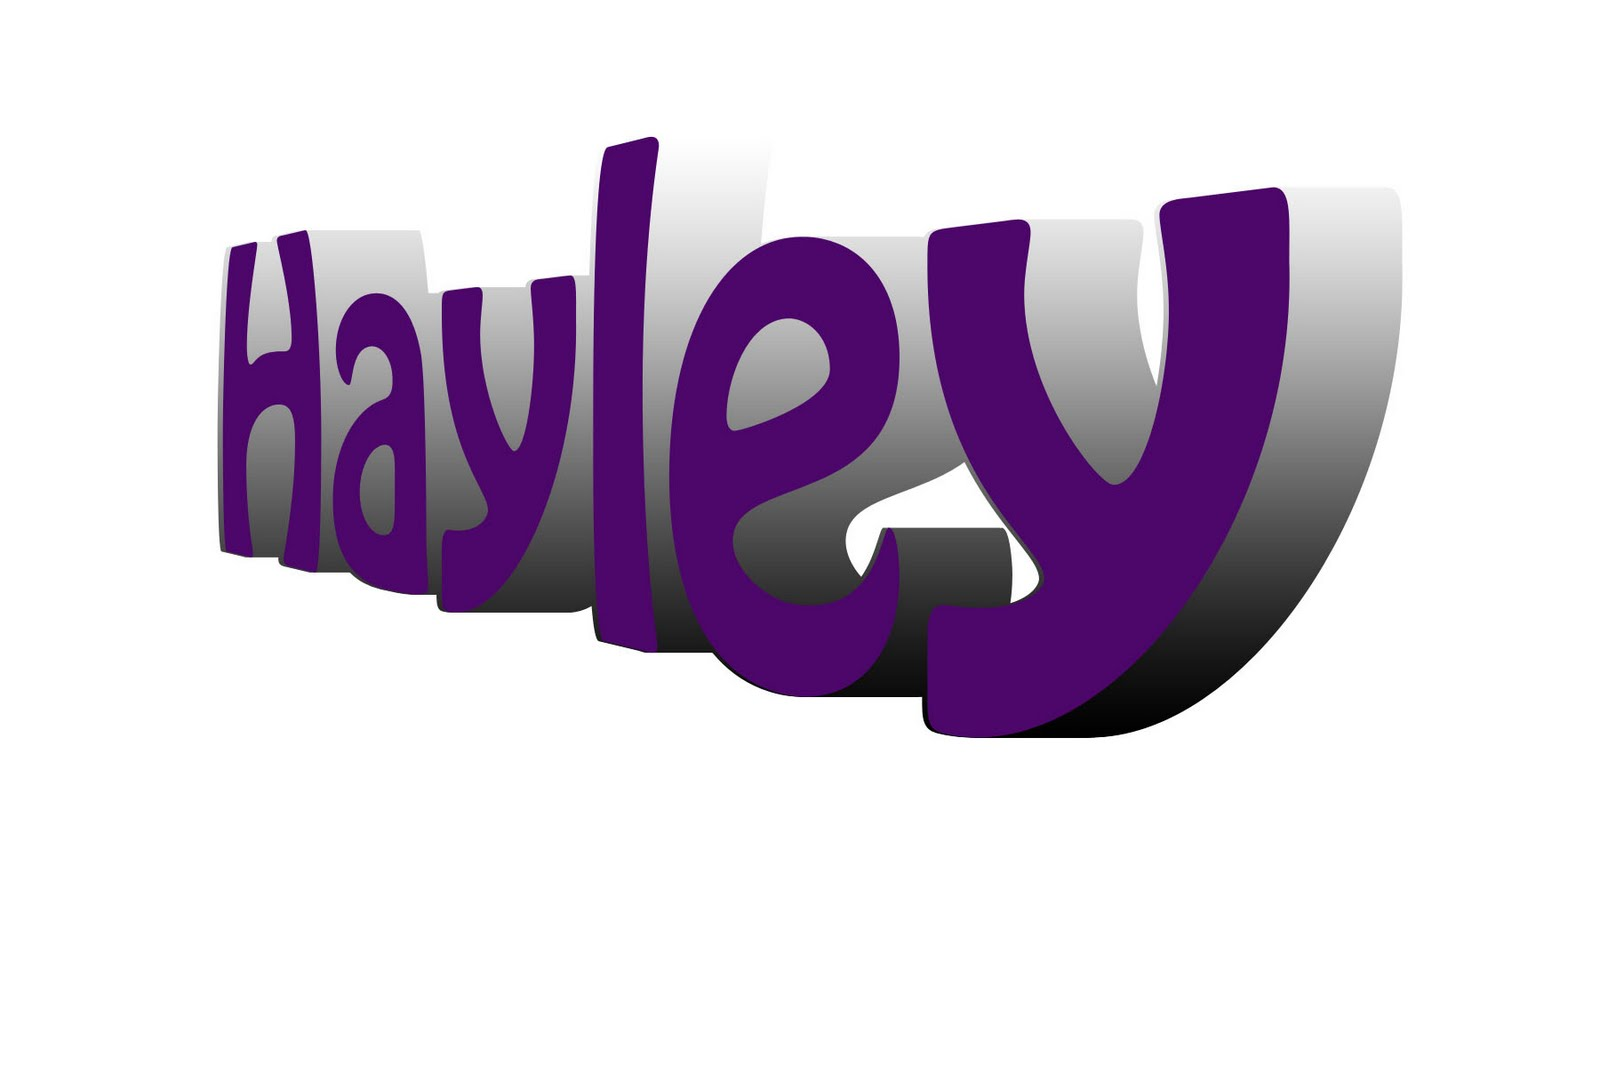 Name: Hayley: Name 3D